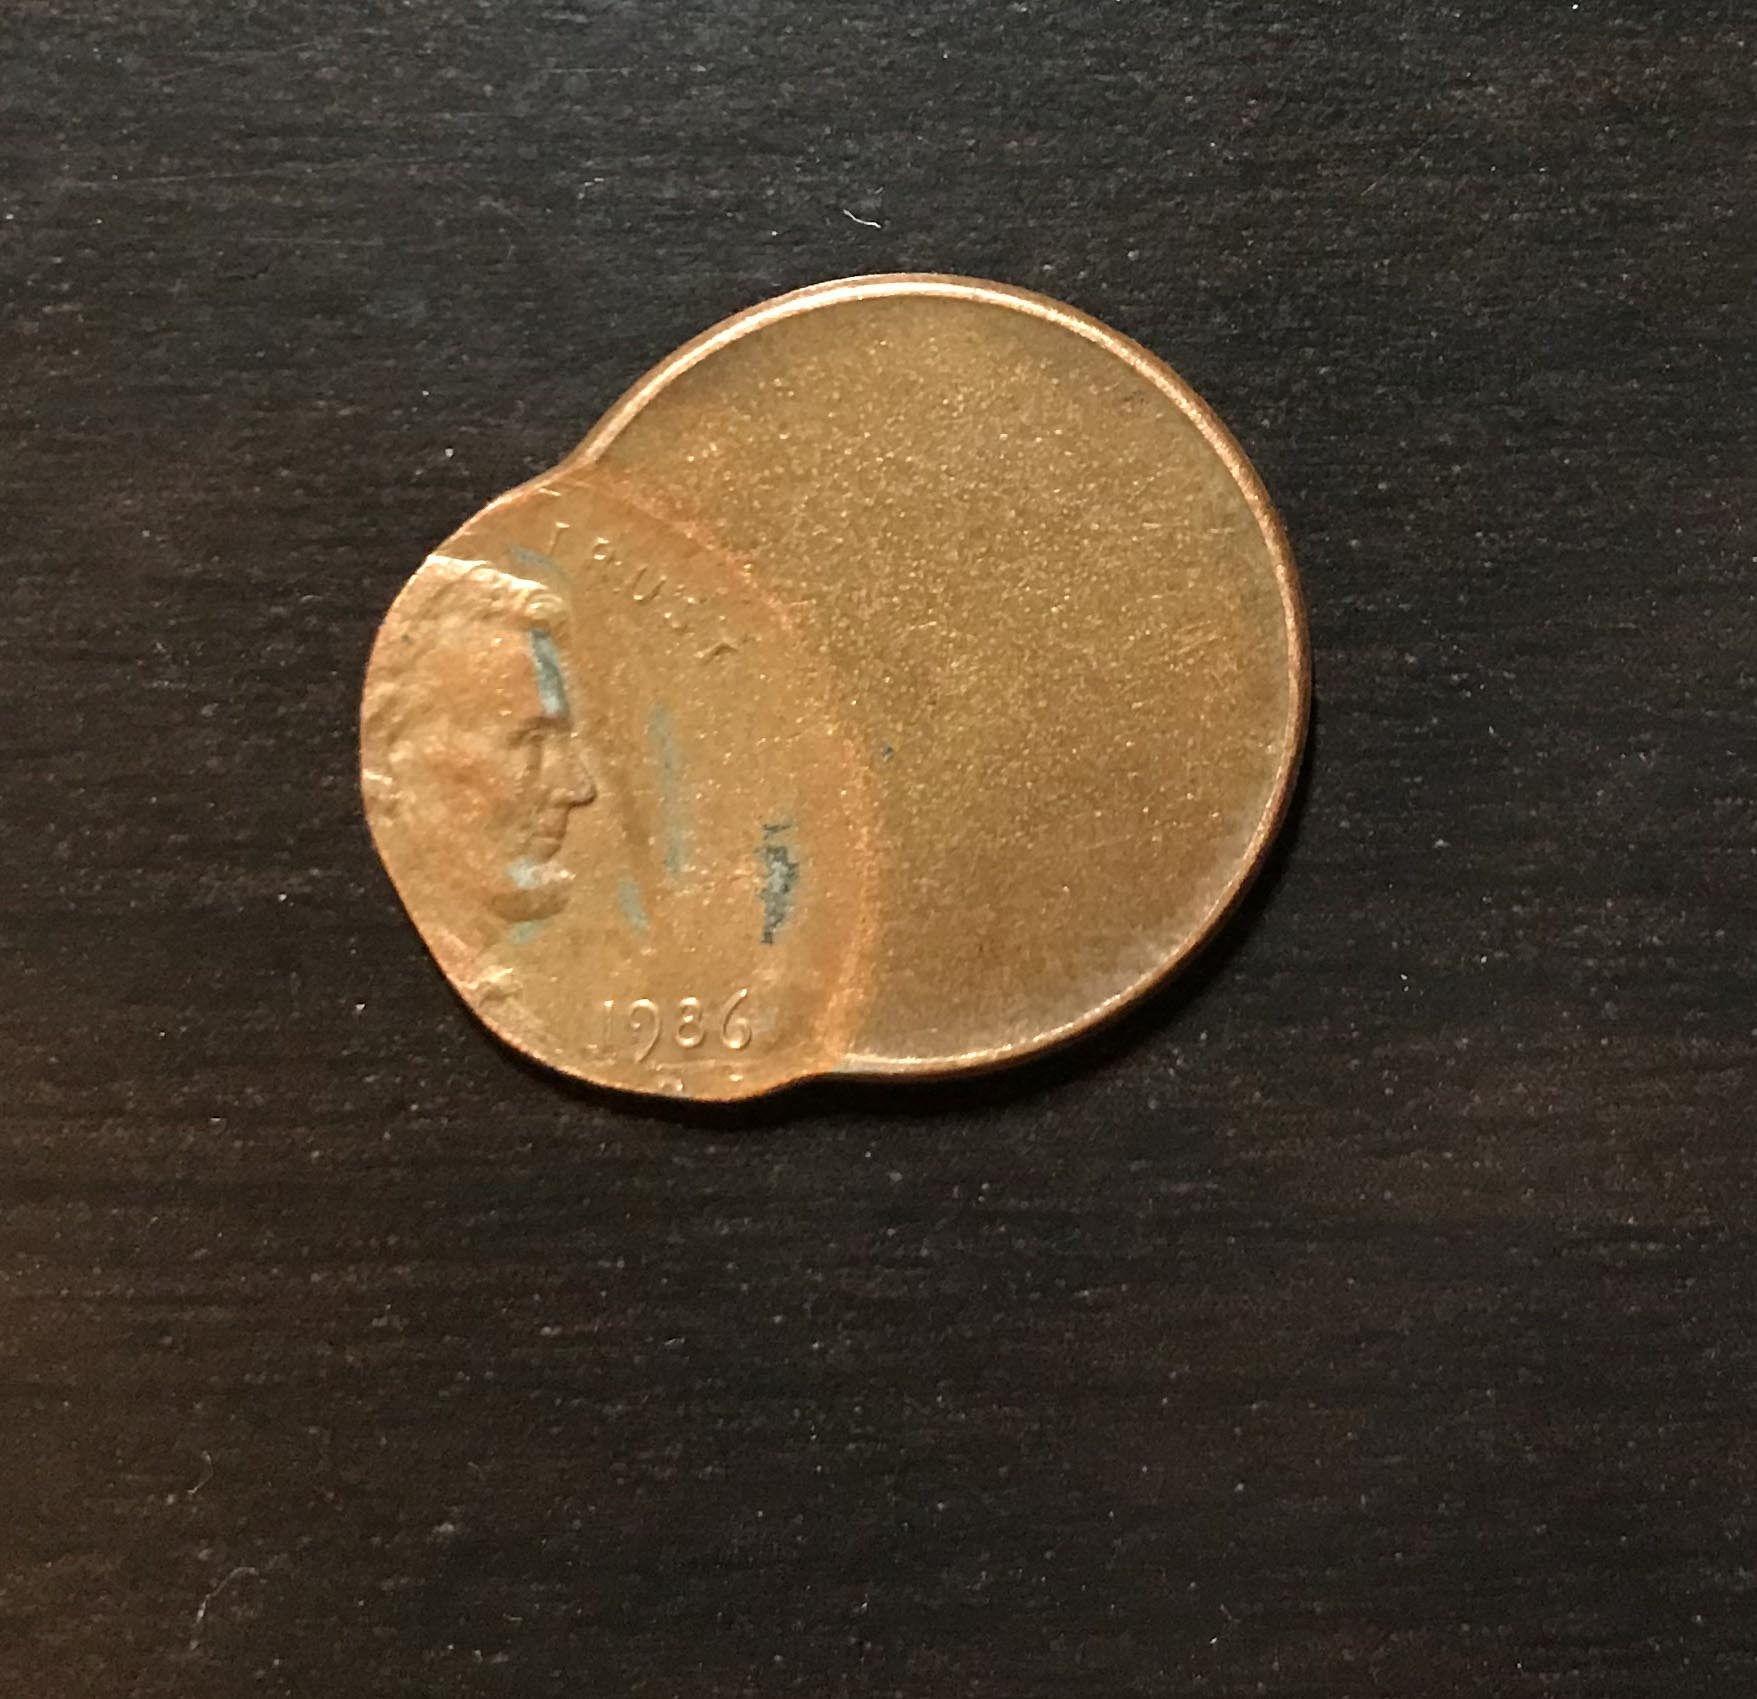 very mis struck penny with date and mint - Coin Community Forum